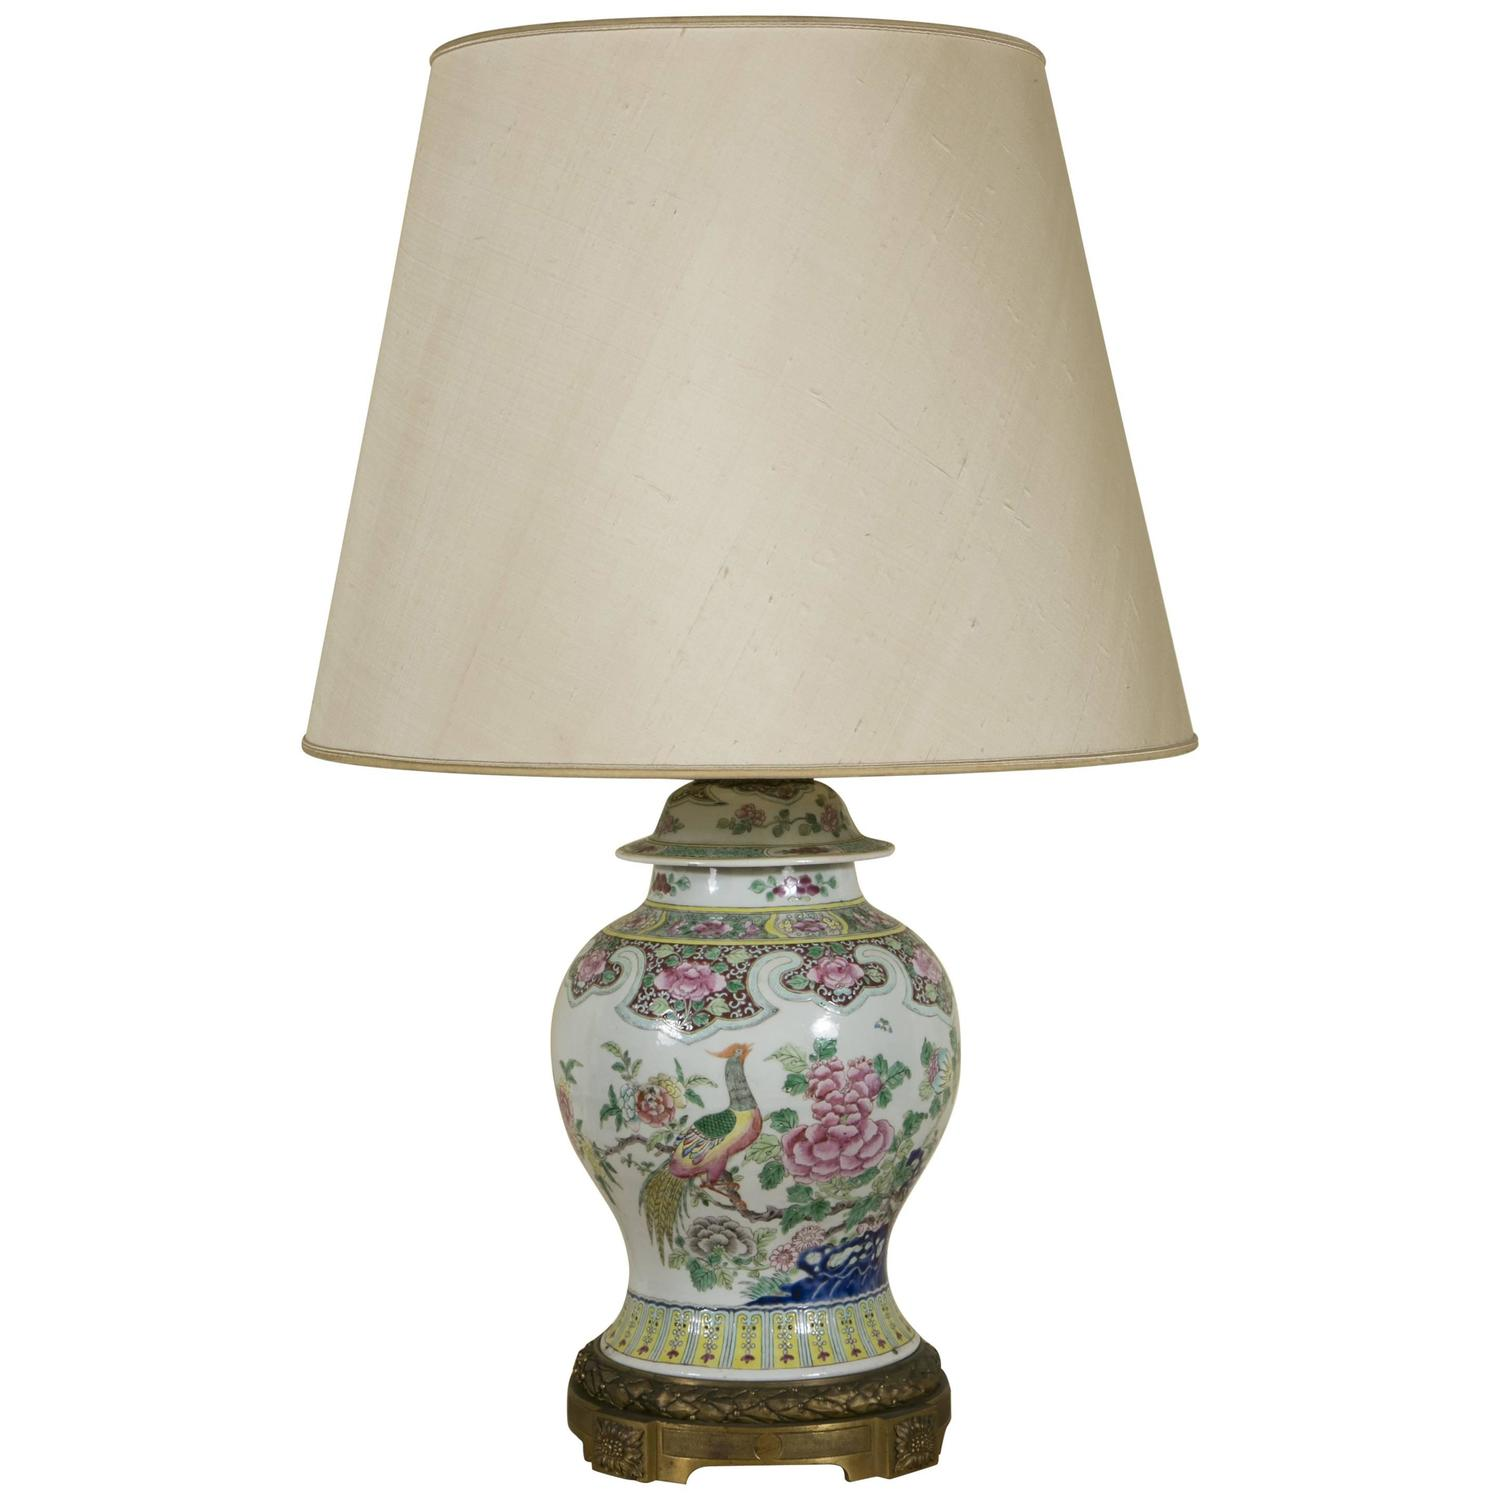 19th Century Chinese Jar With Cover Lamp Monted On Gilt Bronze Base For Sale At 1stdibs